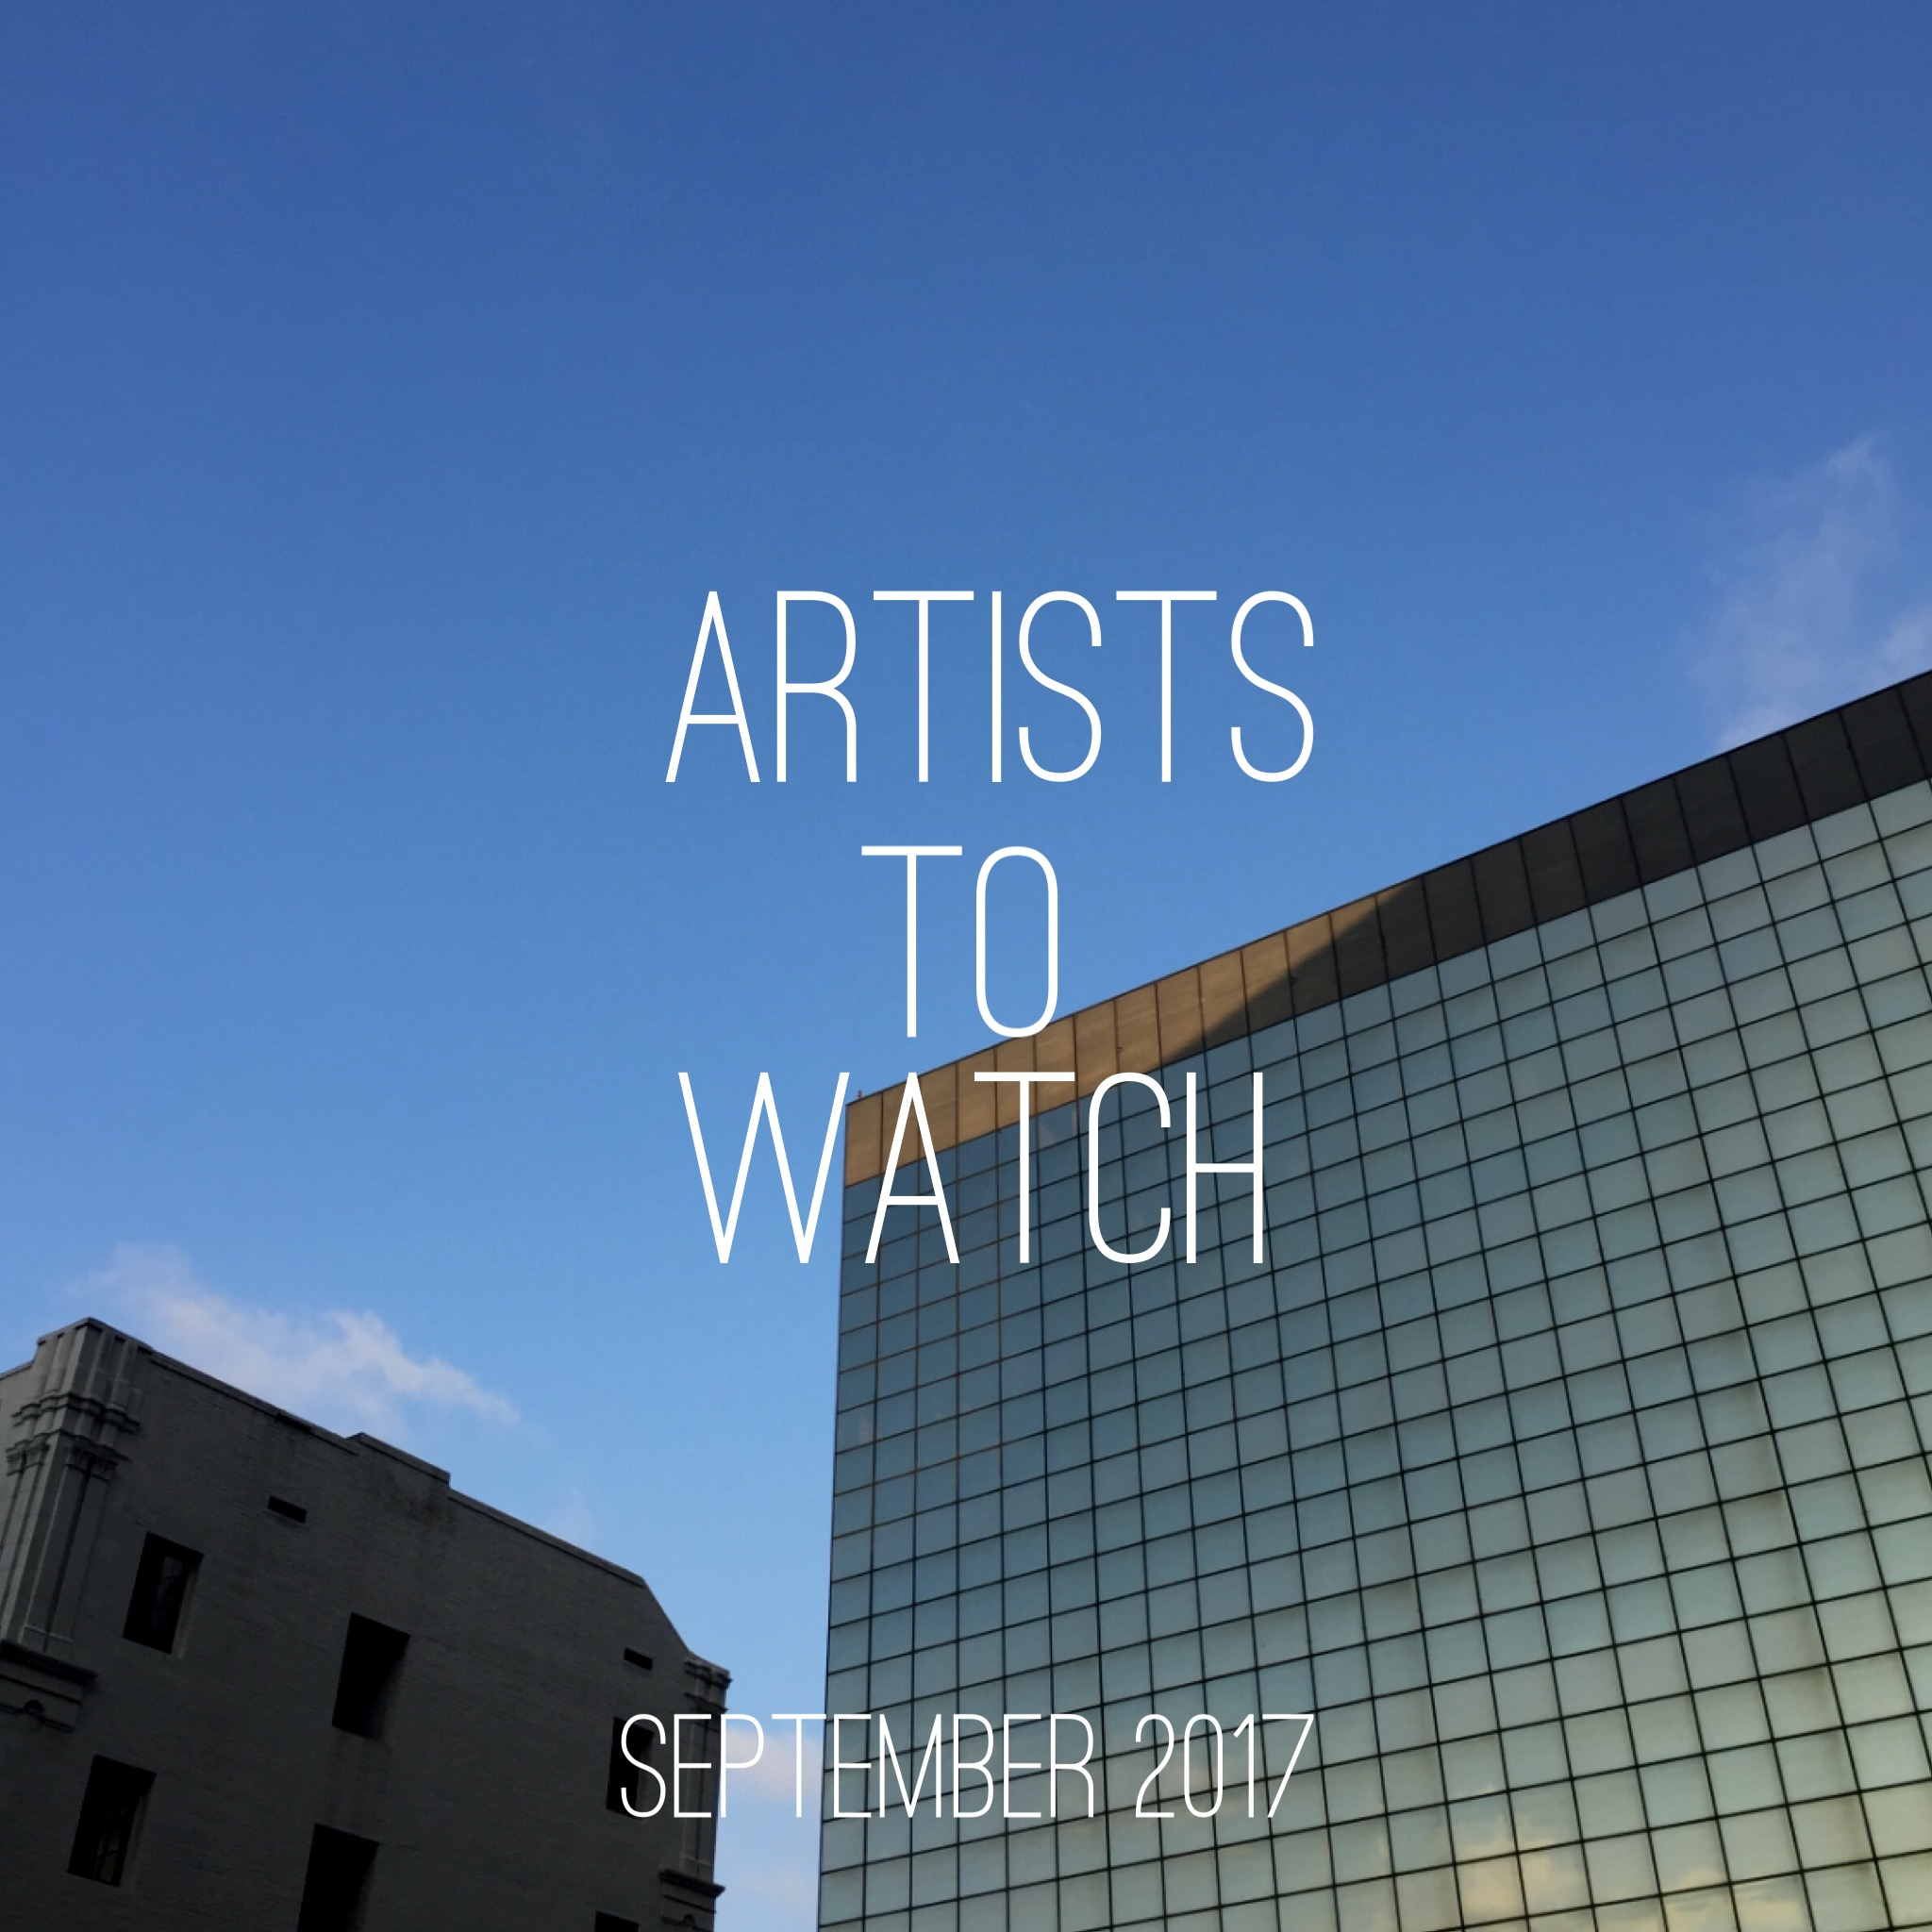 September 2017 artists to watch